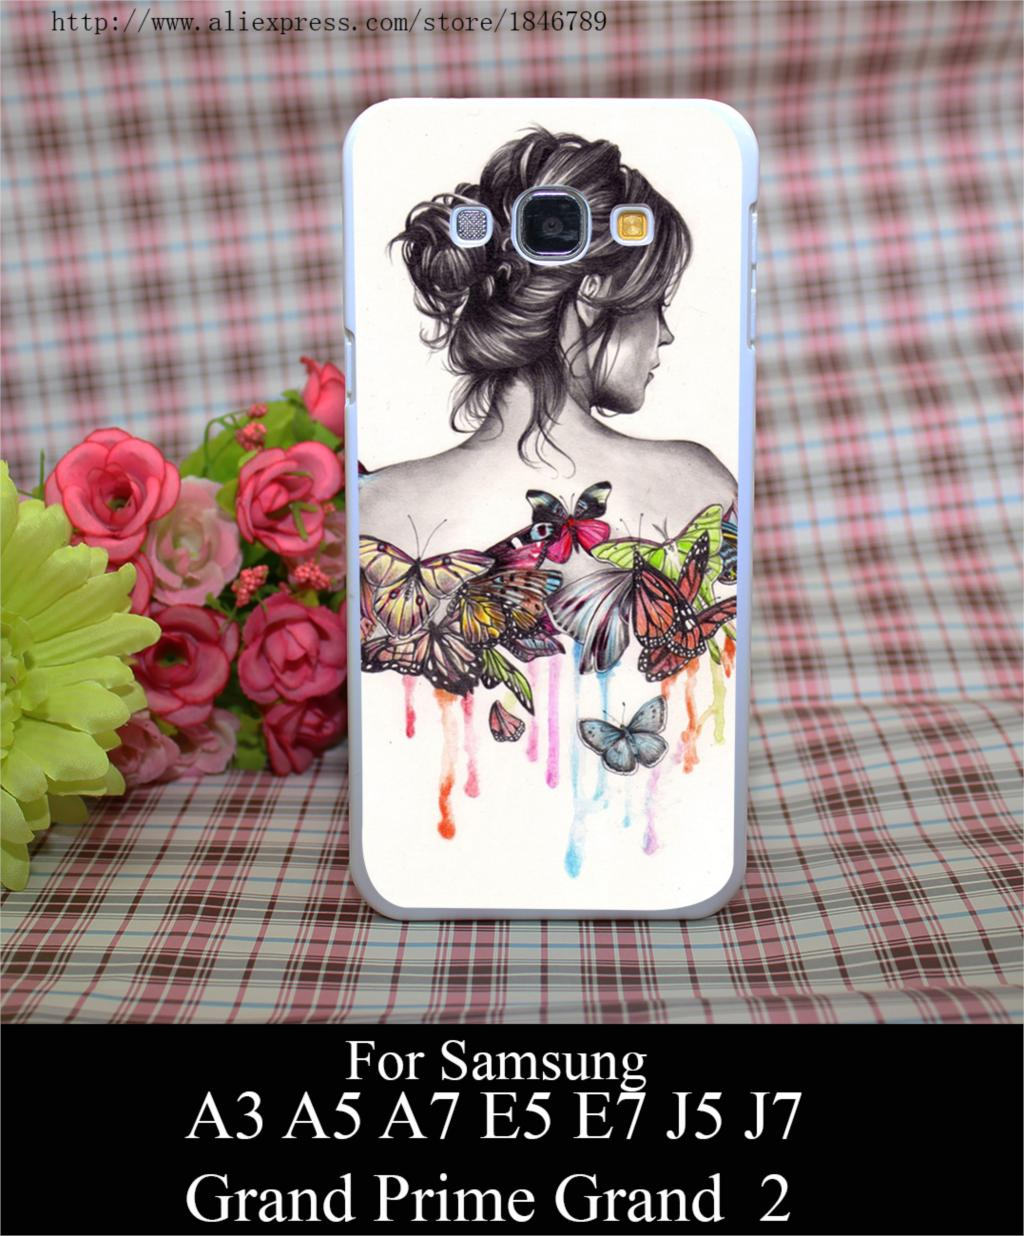 <font><b>Butterfly</b></font> <font><b>Effect</b></font> Style White Hard Case Cover for Samsung A3 A5 A7 A8 E5 E7 J5 J7 Grand Prime <font><b>2</b></font> G530